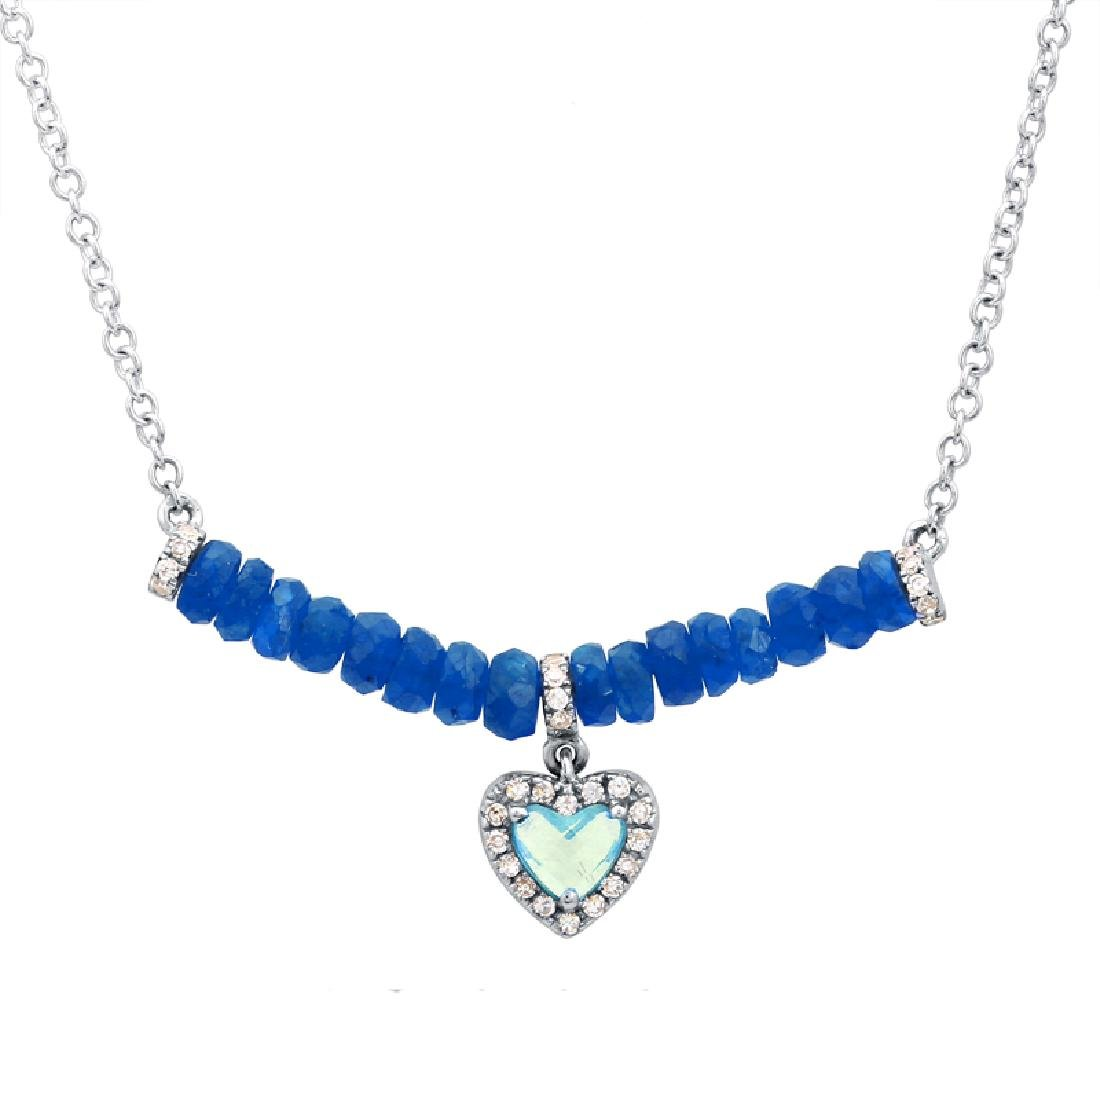 14KT White Gold Gemstone Necklace